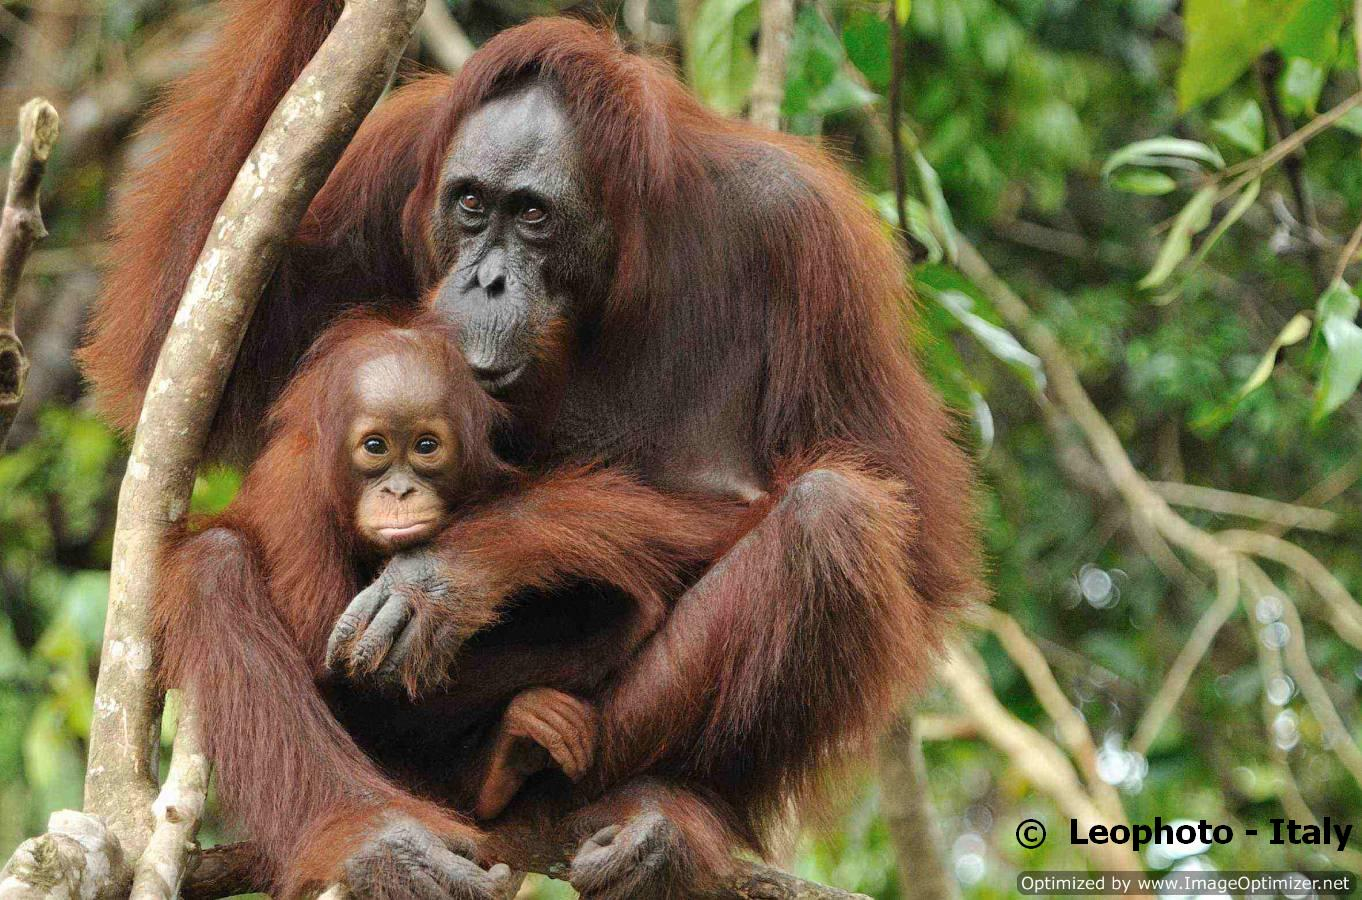 borneo, kalimantan, tours, tour, tangkiling mountain, pulau kaja, orangutan, wildlife, safari